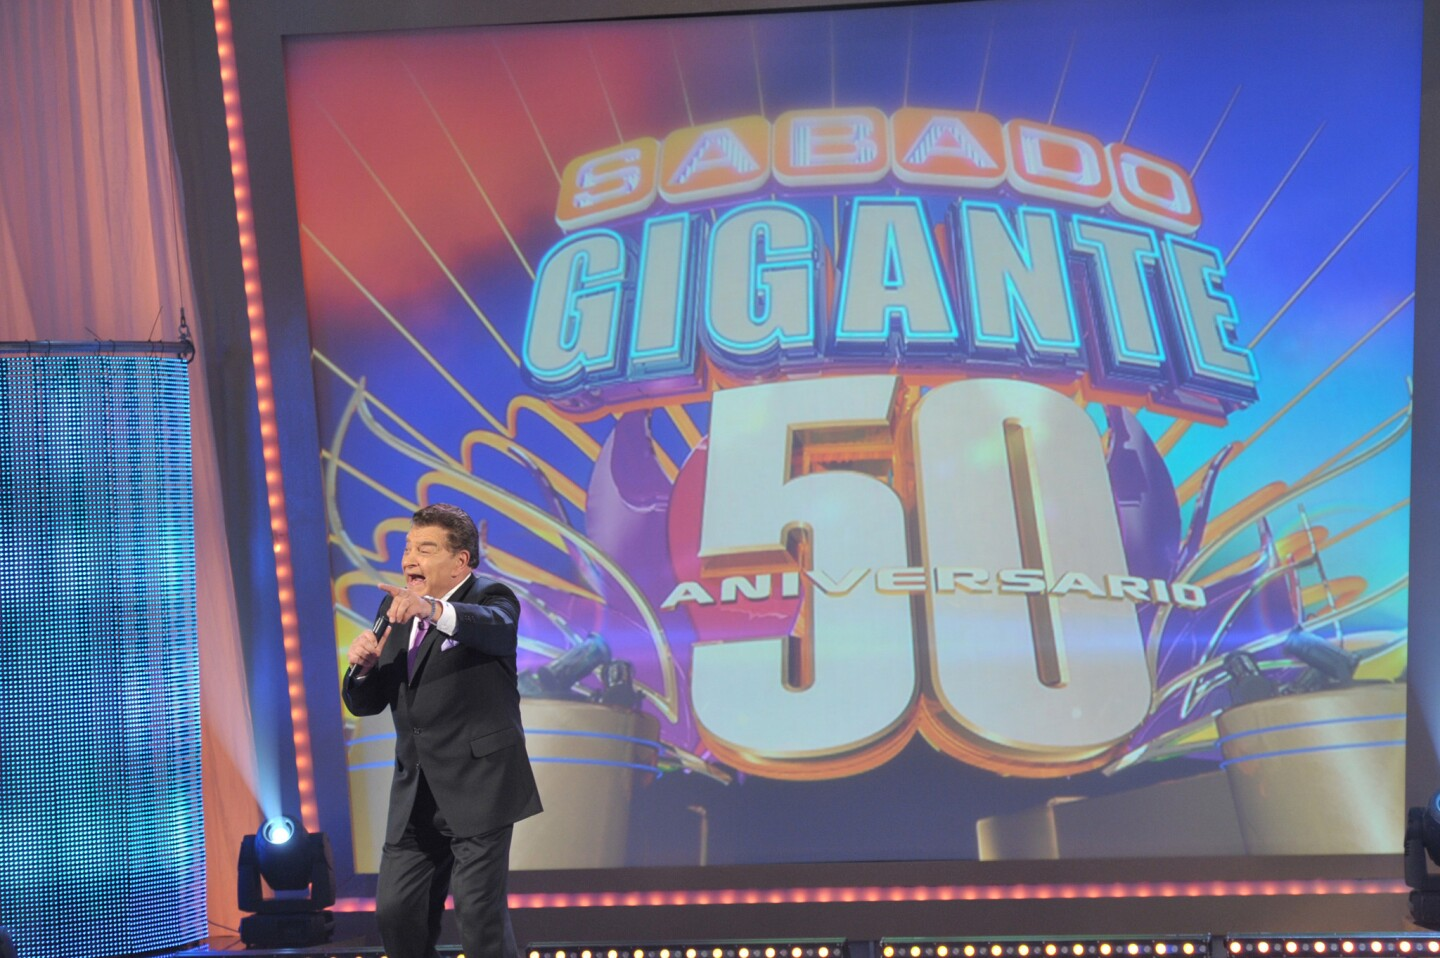 """The longest-running variety show in TV history is """"Sabado Gigante."""" The show, a collection of celebrities, contests, bikini-clad senoritas and little people in wrestler costumes, is led by its Chile-born ringleader Don Francisco, shown. He has hosted the Spanish-language show (which translates to """"Giant Saturday"""") since 1962, clocking in more than 2,600 episodes."""